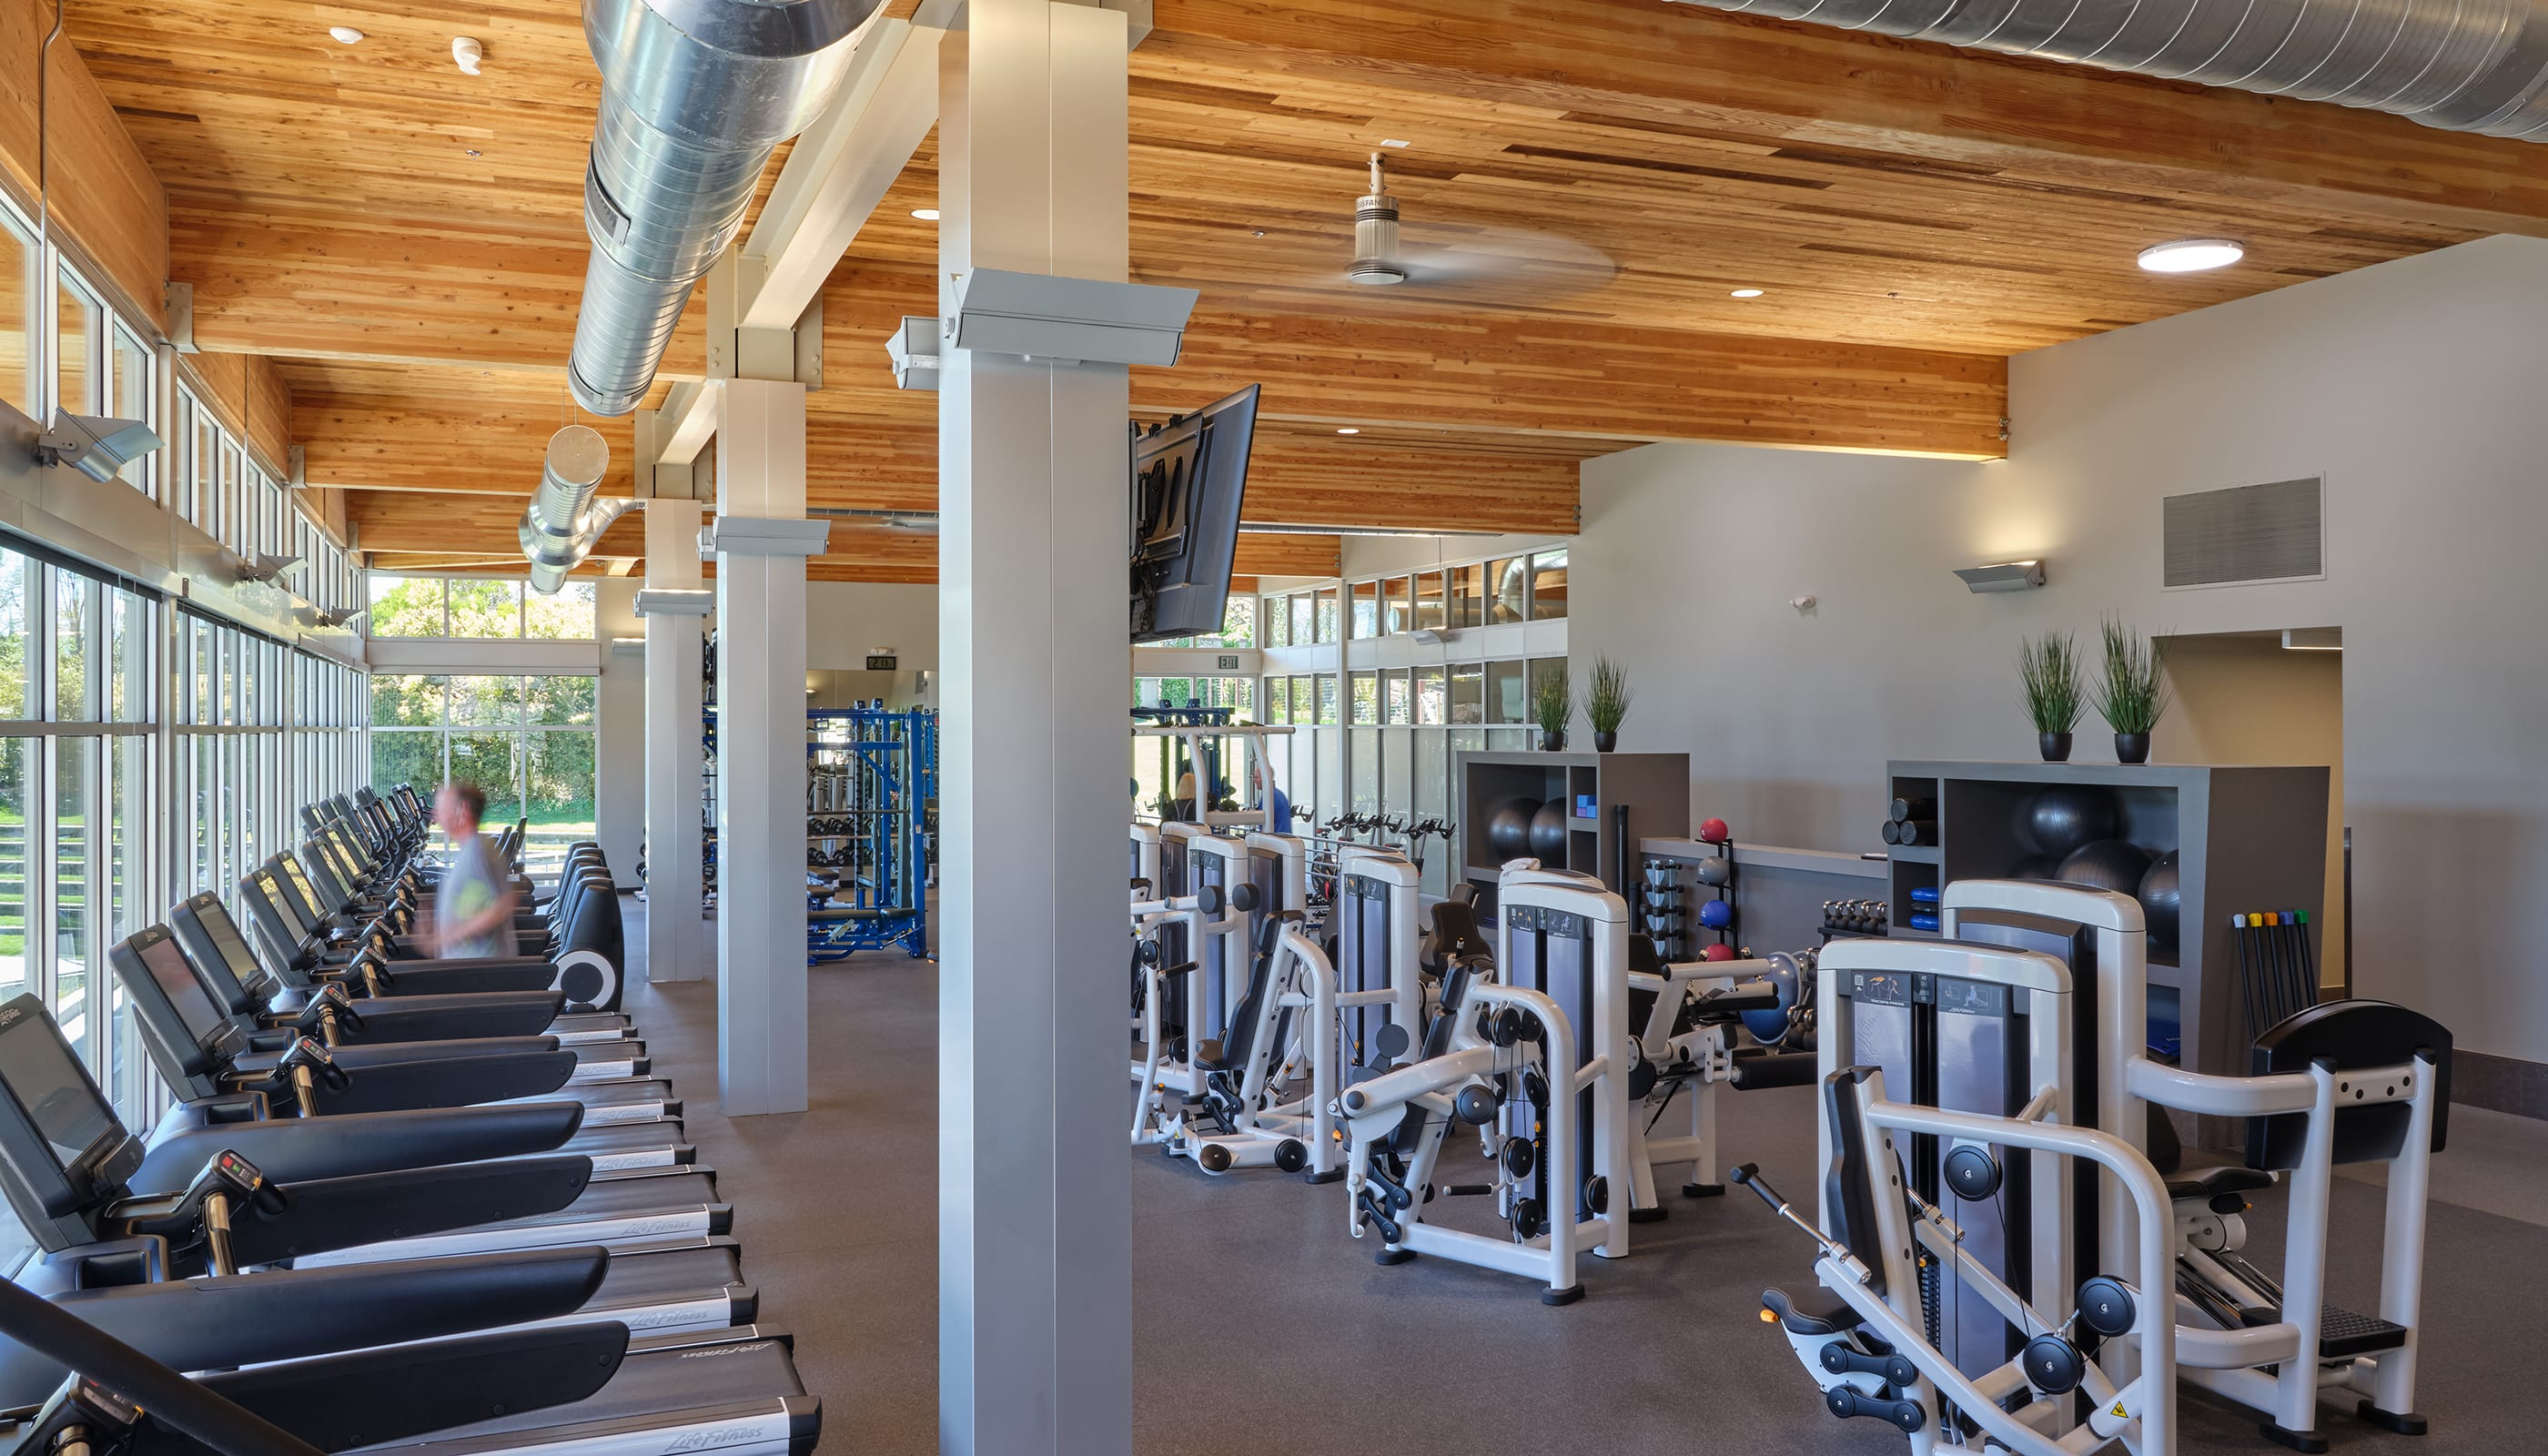 Blackhawk Fitness Wellness - Commercial Architecture